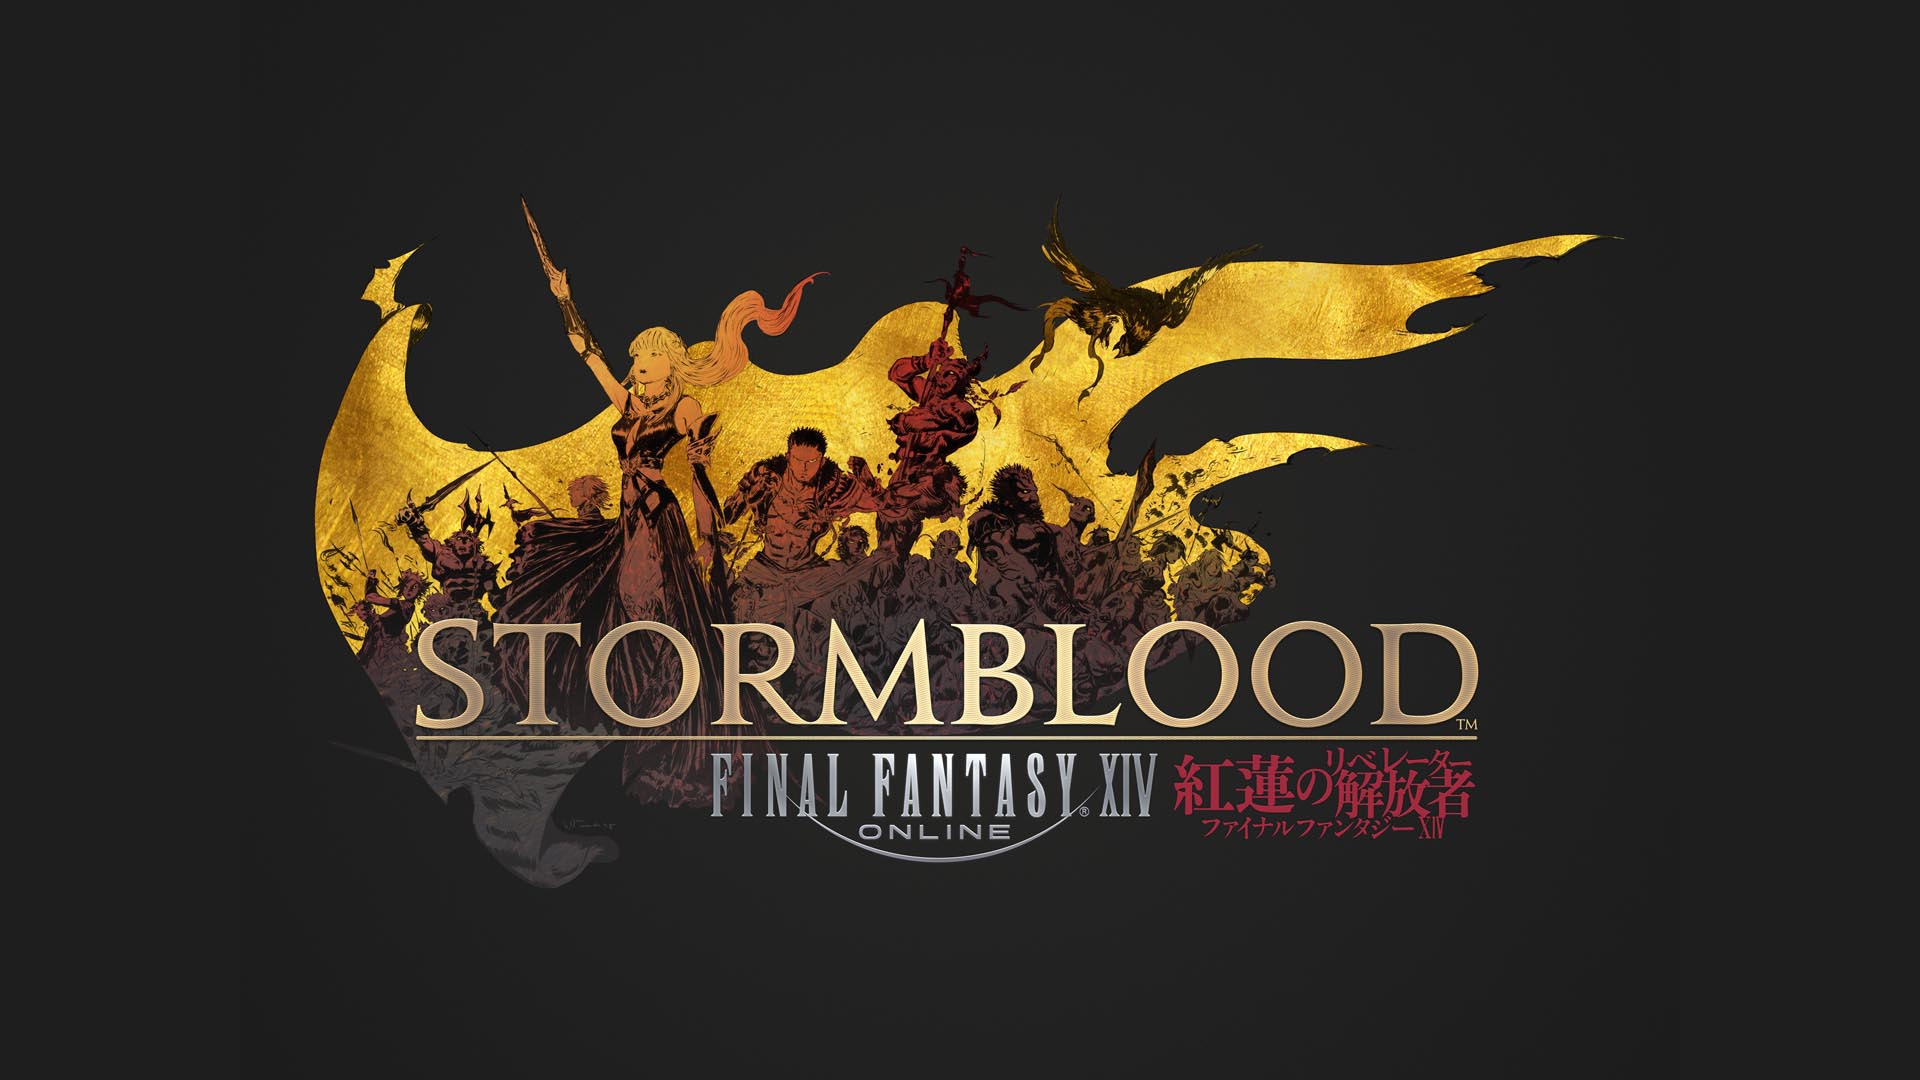 FINAL FANTASY XIV Stormblood Patch 425 Enthllt Das